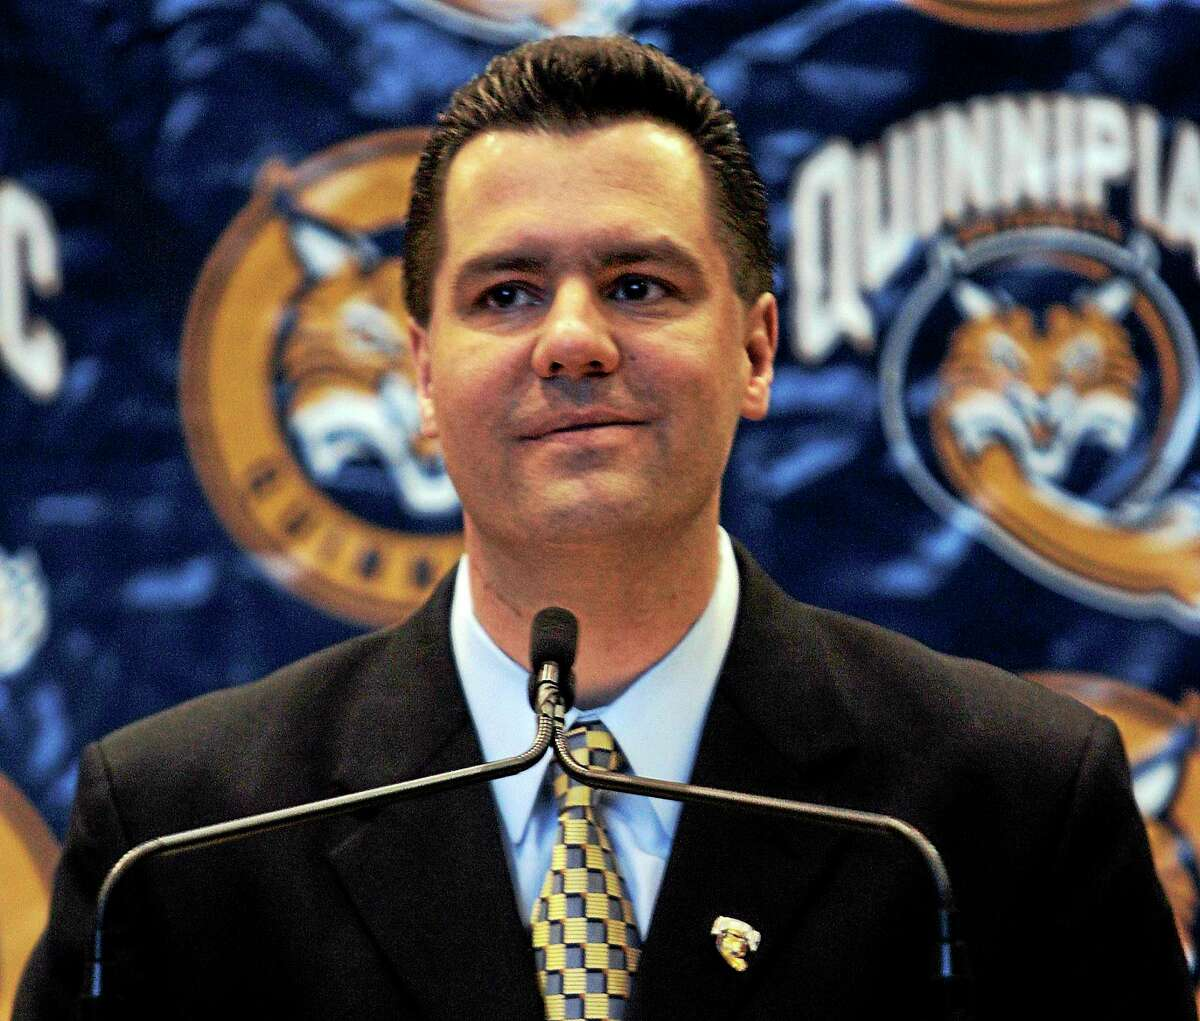 Quinnipiac men's basketball coach Tom Moore